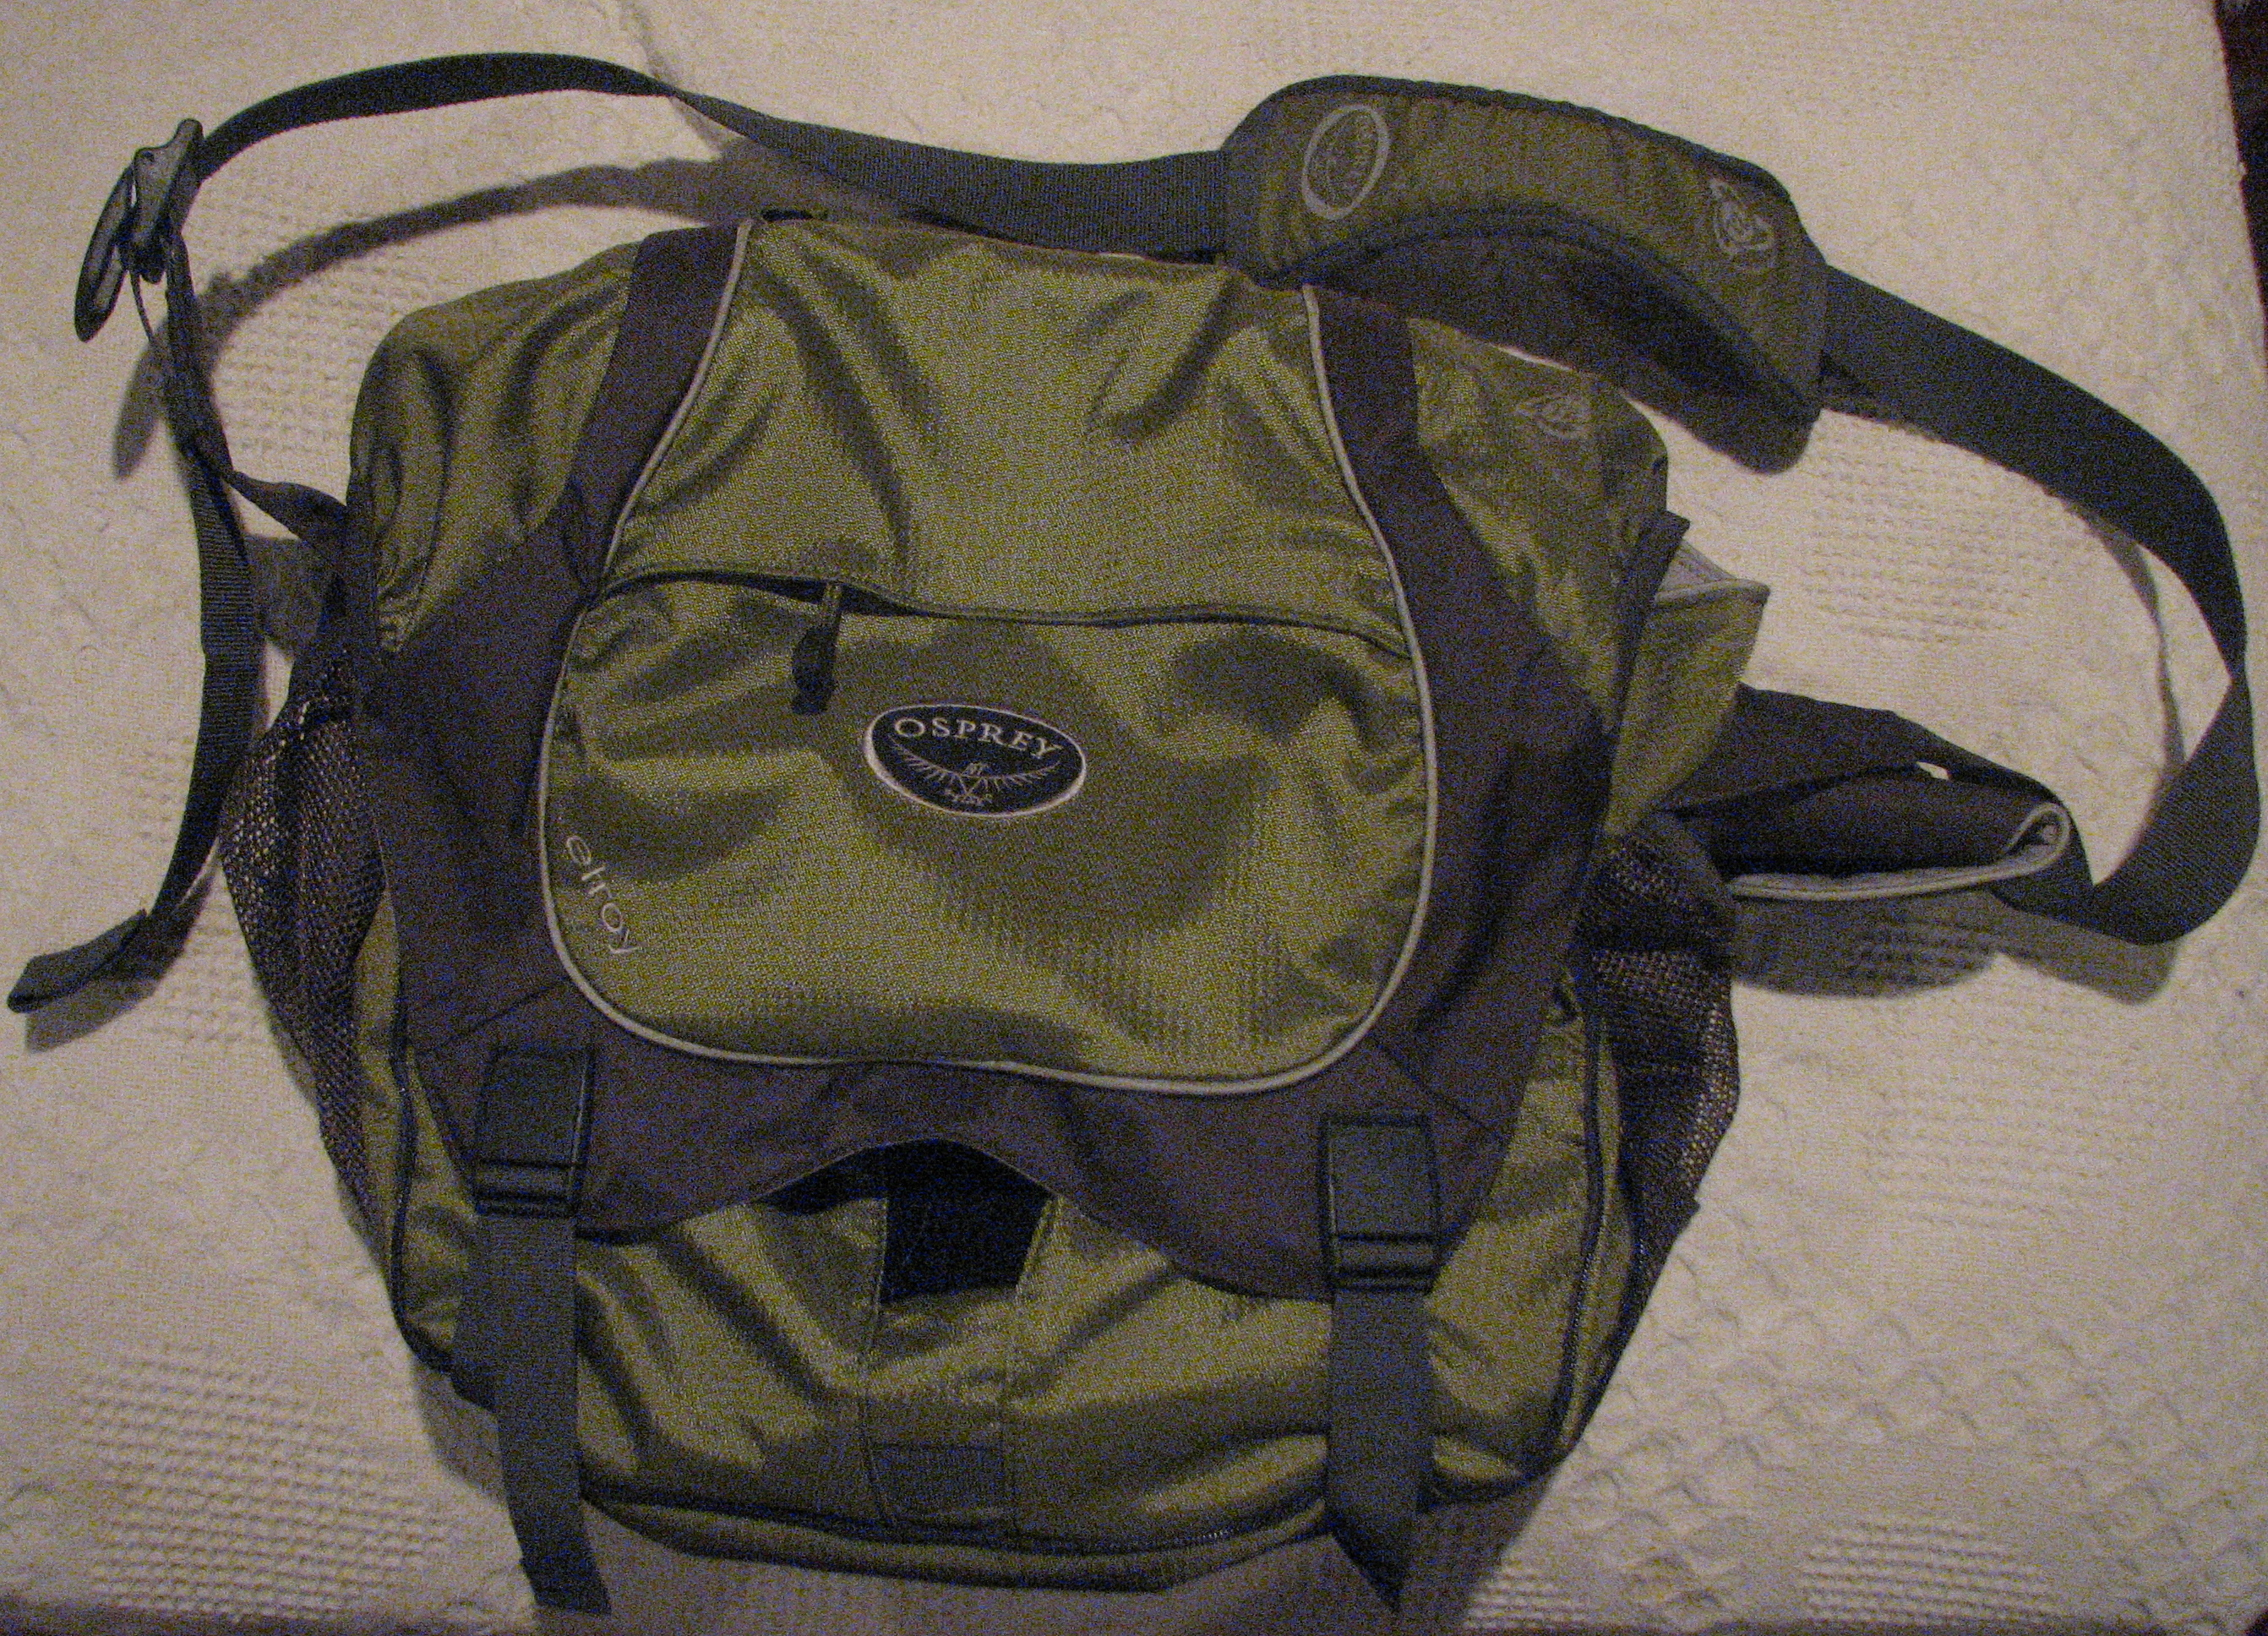 Osprey Elroy 4 All Outdoors4 All Outdoors